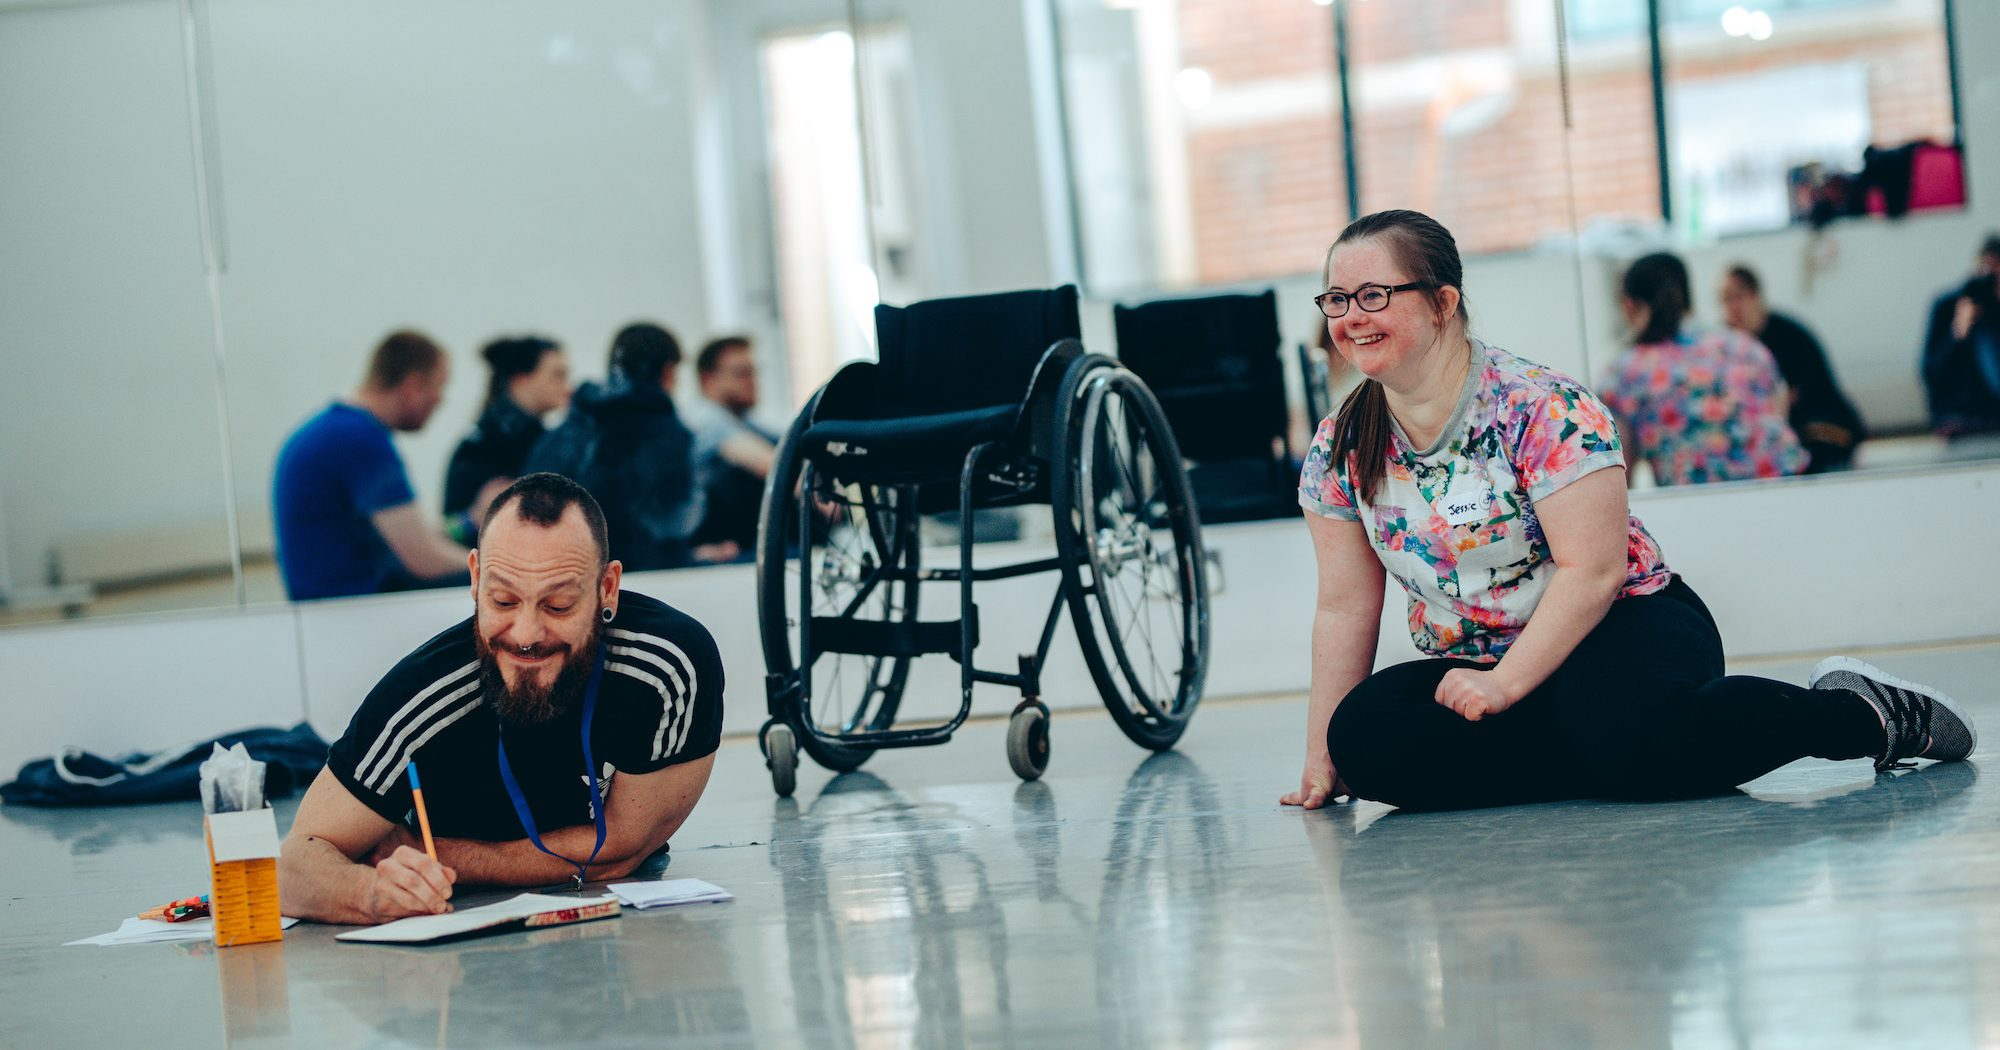 Daryl lays on the floor writing notes and smiling. A wheelchair is behind him. Jess sits next to Daryl smiling. Behind them is a large mirror - the reflection shows a group of people in the background.